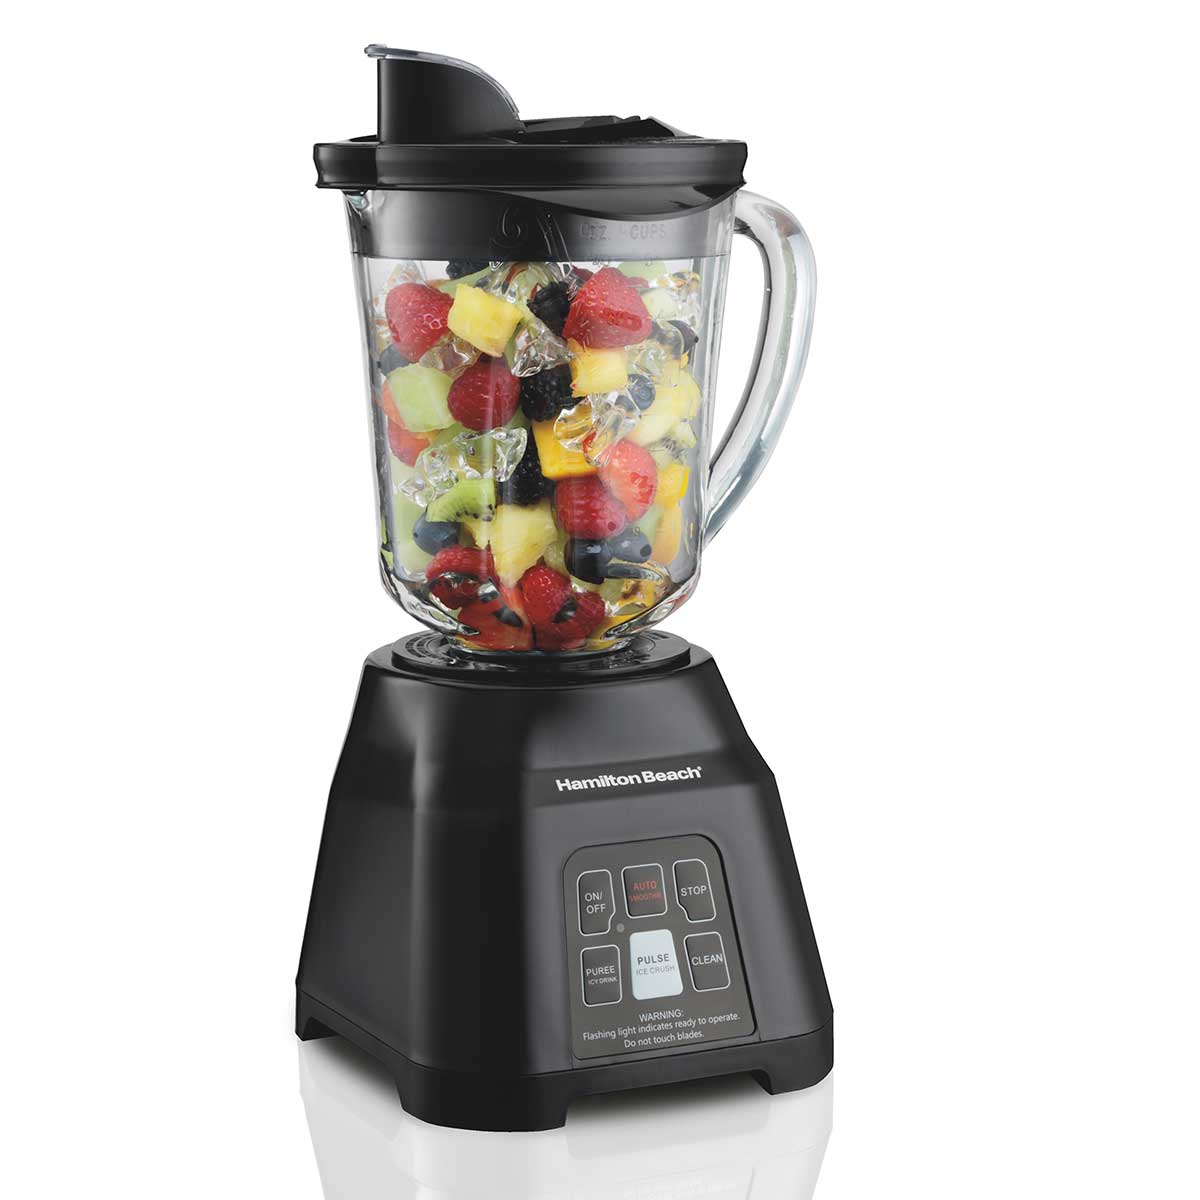 Digital Smoothie Blender 5 Functions with 40oz Glass Jar, 700W Black (56207)